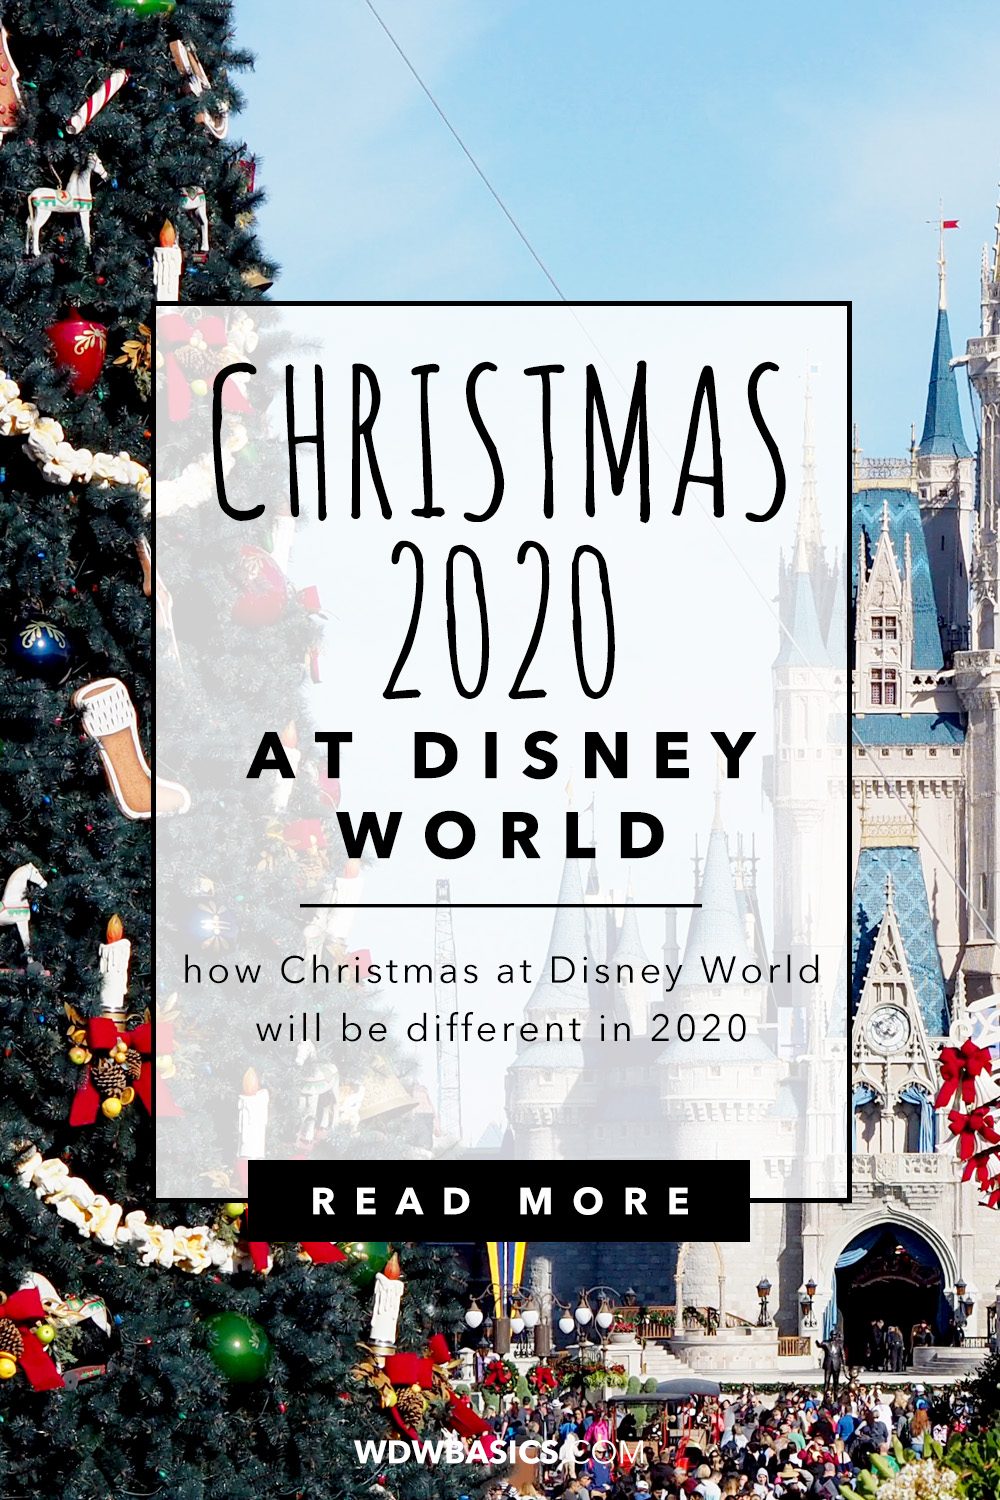 Christmas 2020 at Disney World